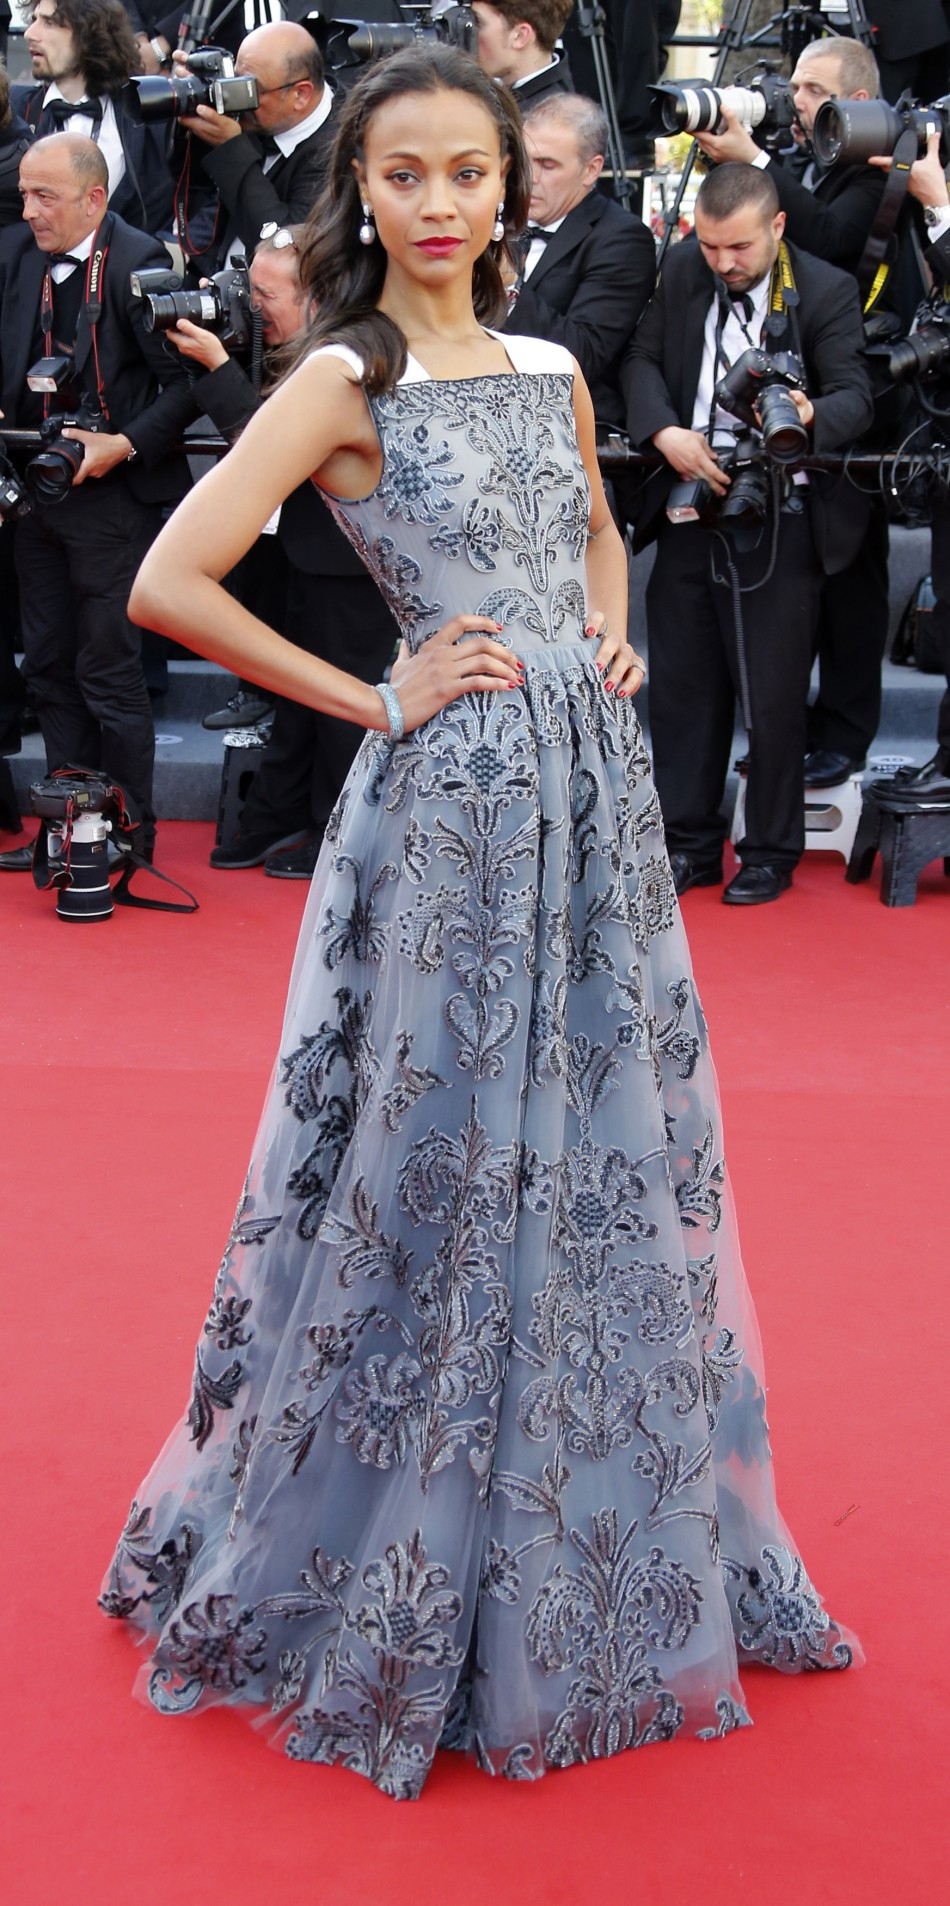 Cast member Zoe Saldana poses on the red carpet as she arrives for the screening of the film Blood Ties during the 66th Cannes Film Festival in Cannes May 20, 2013.